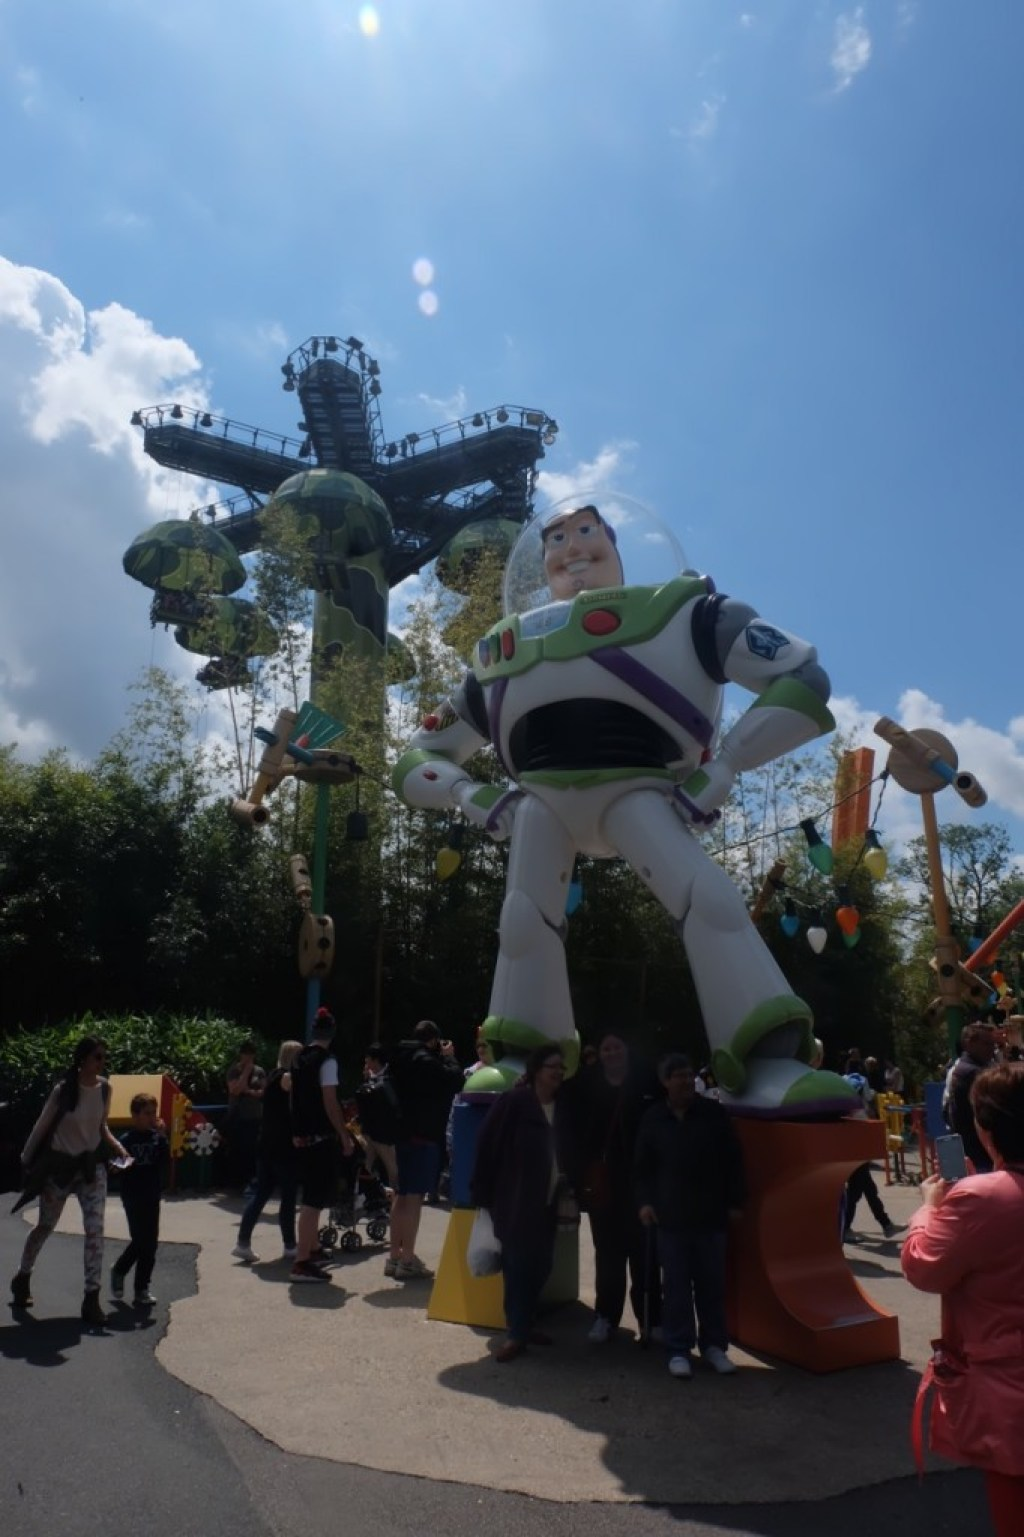 Emma Inks Disneyland Theme Park Paris France Buzz Lightyear